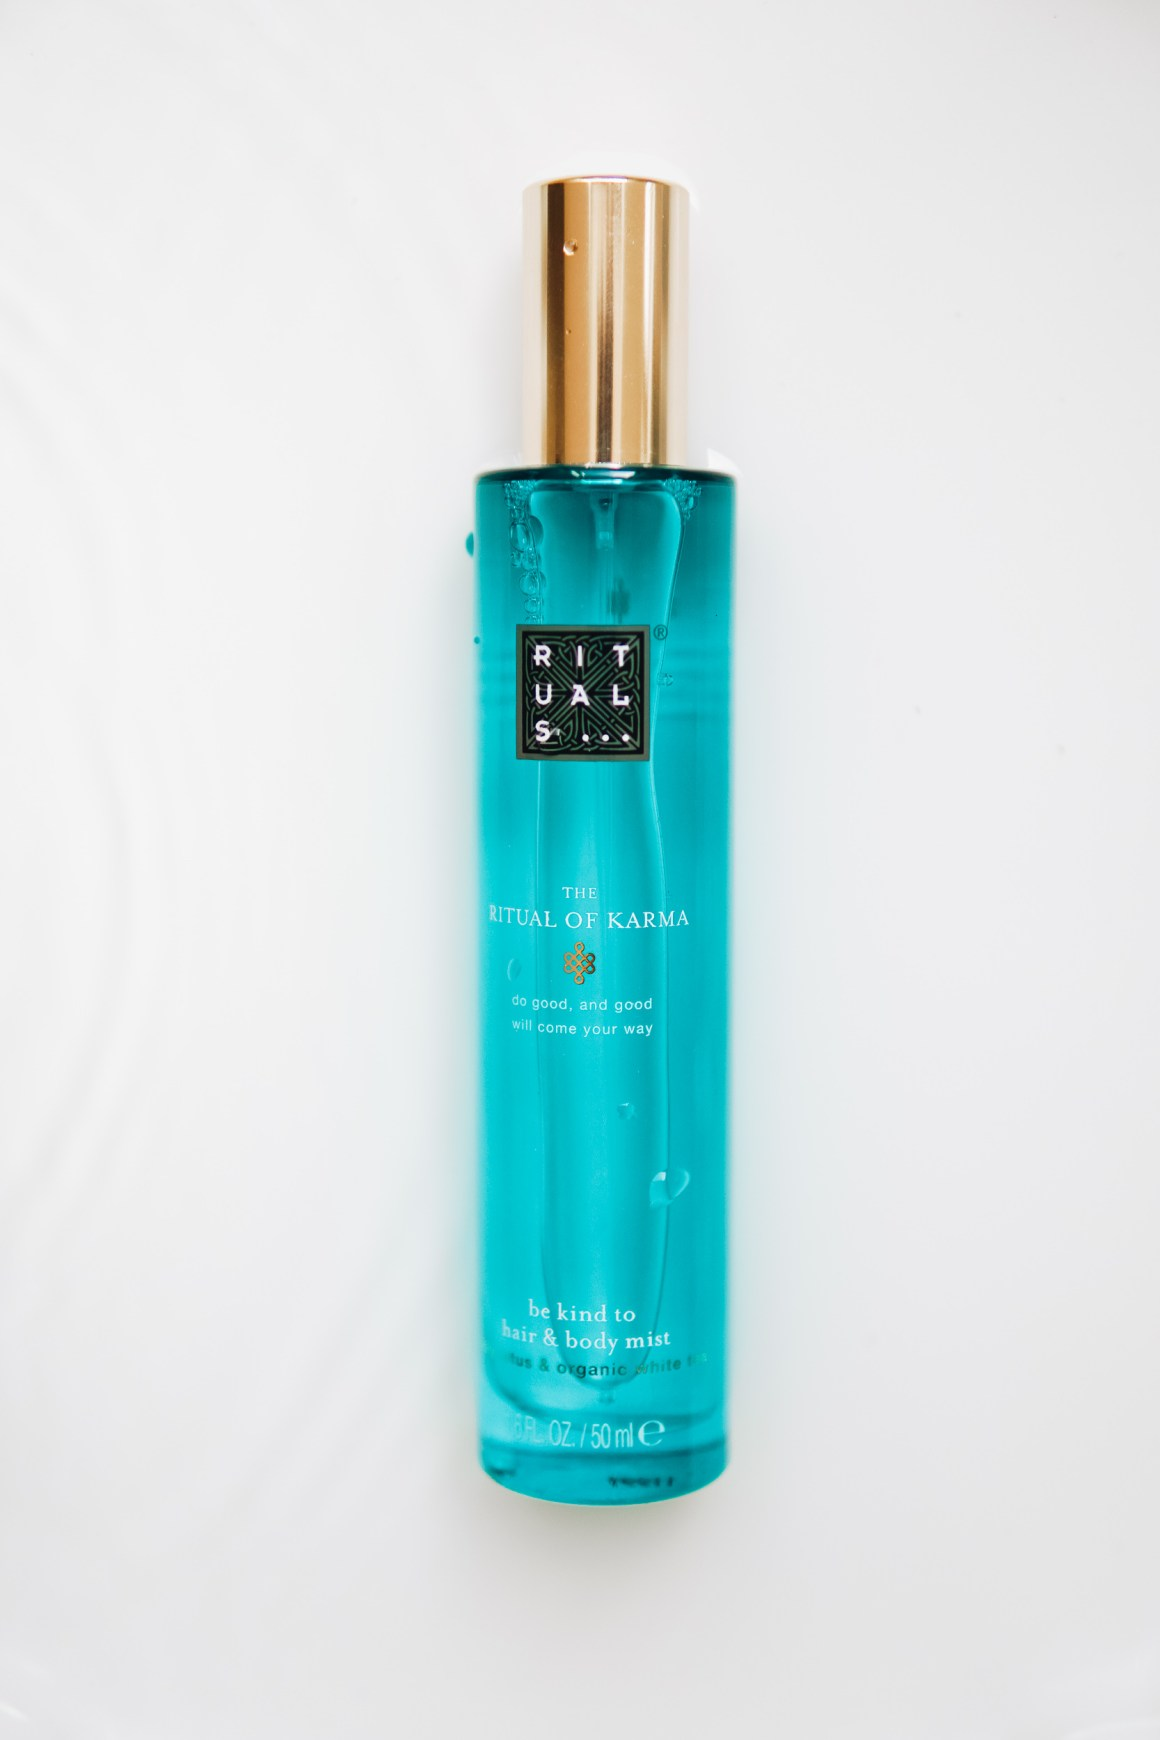 Rituals The Ritual Of Karma Be Kind To Hair & Body Mist (holy lotus & organic white tea)